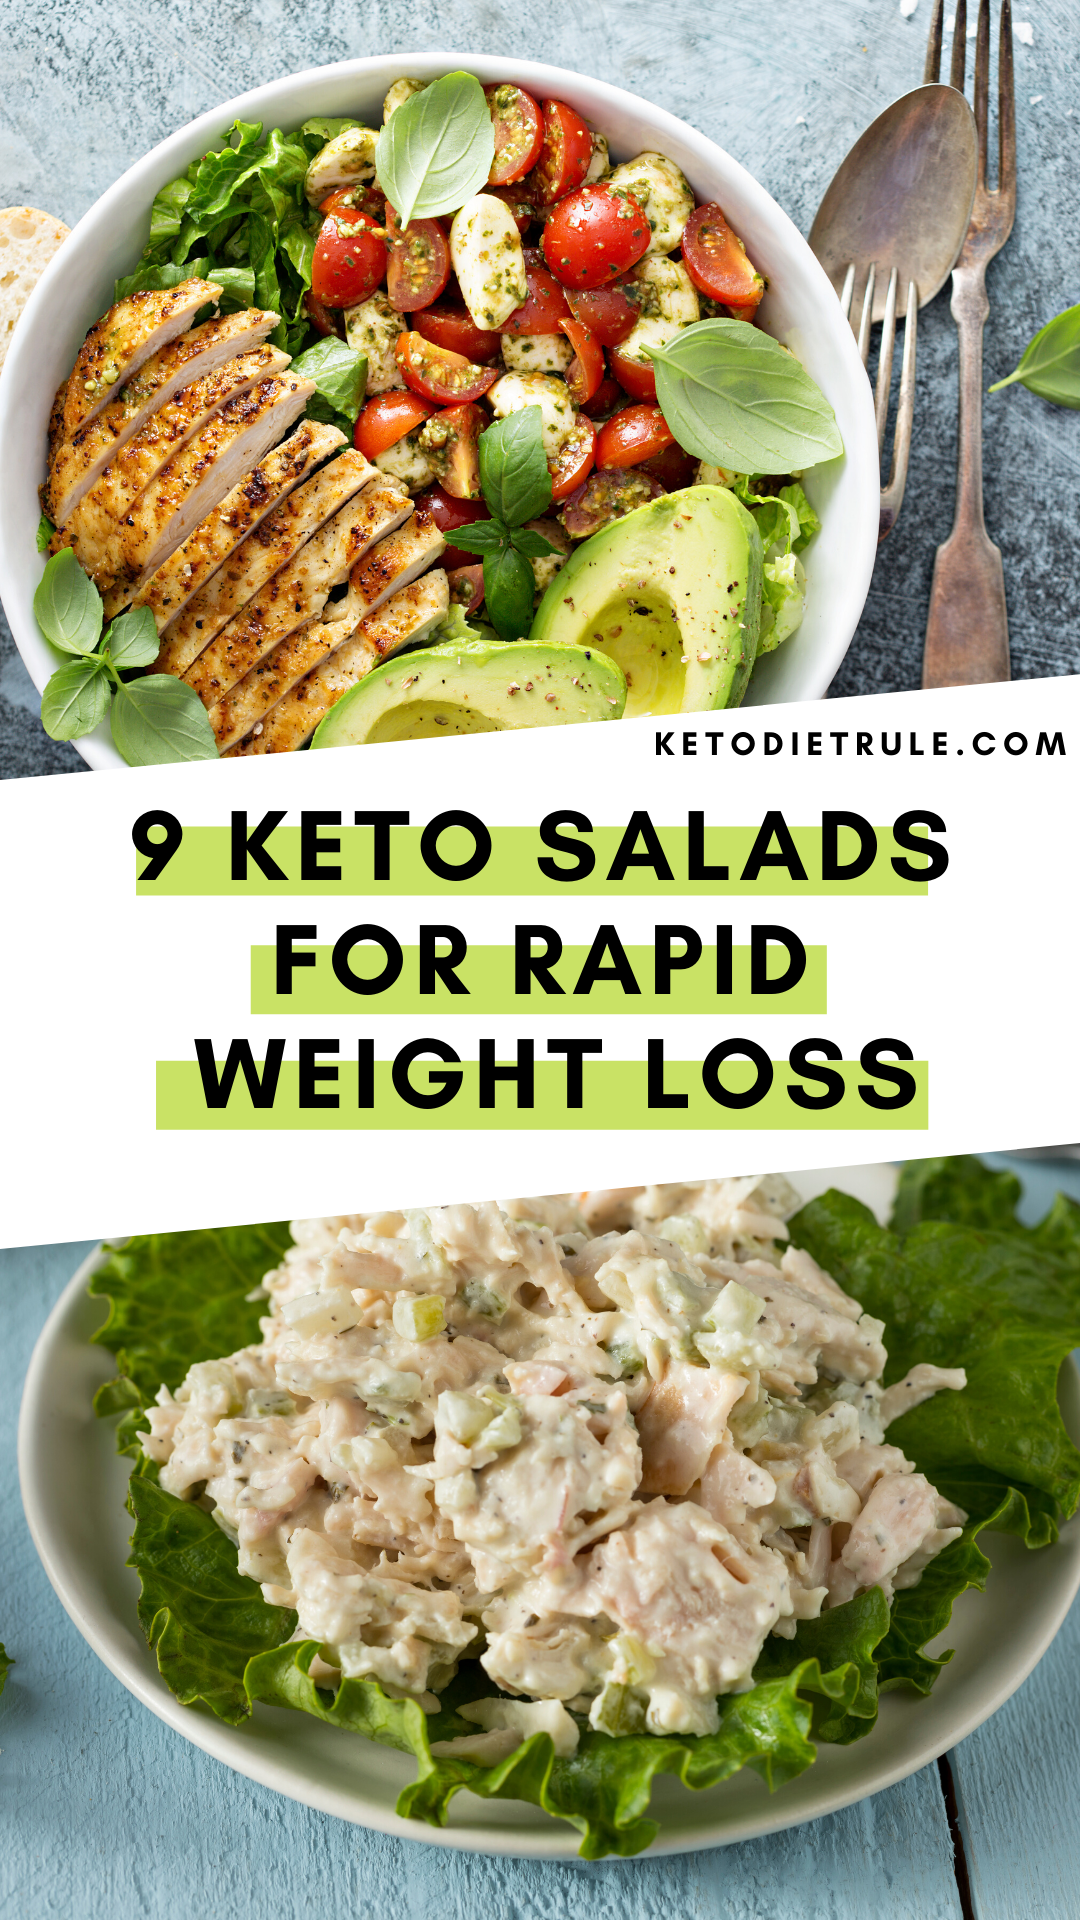 Photo of 9 Best Keto Diet Salad Recipes for Rapid Weight Loss